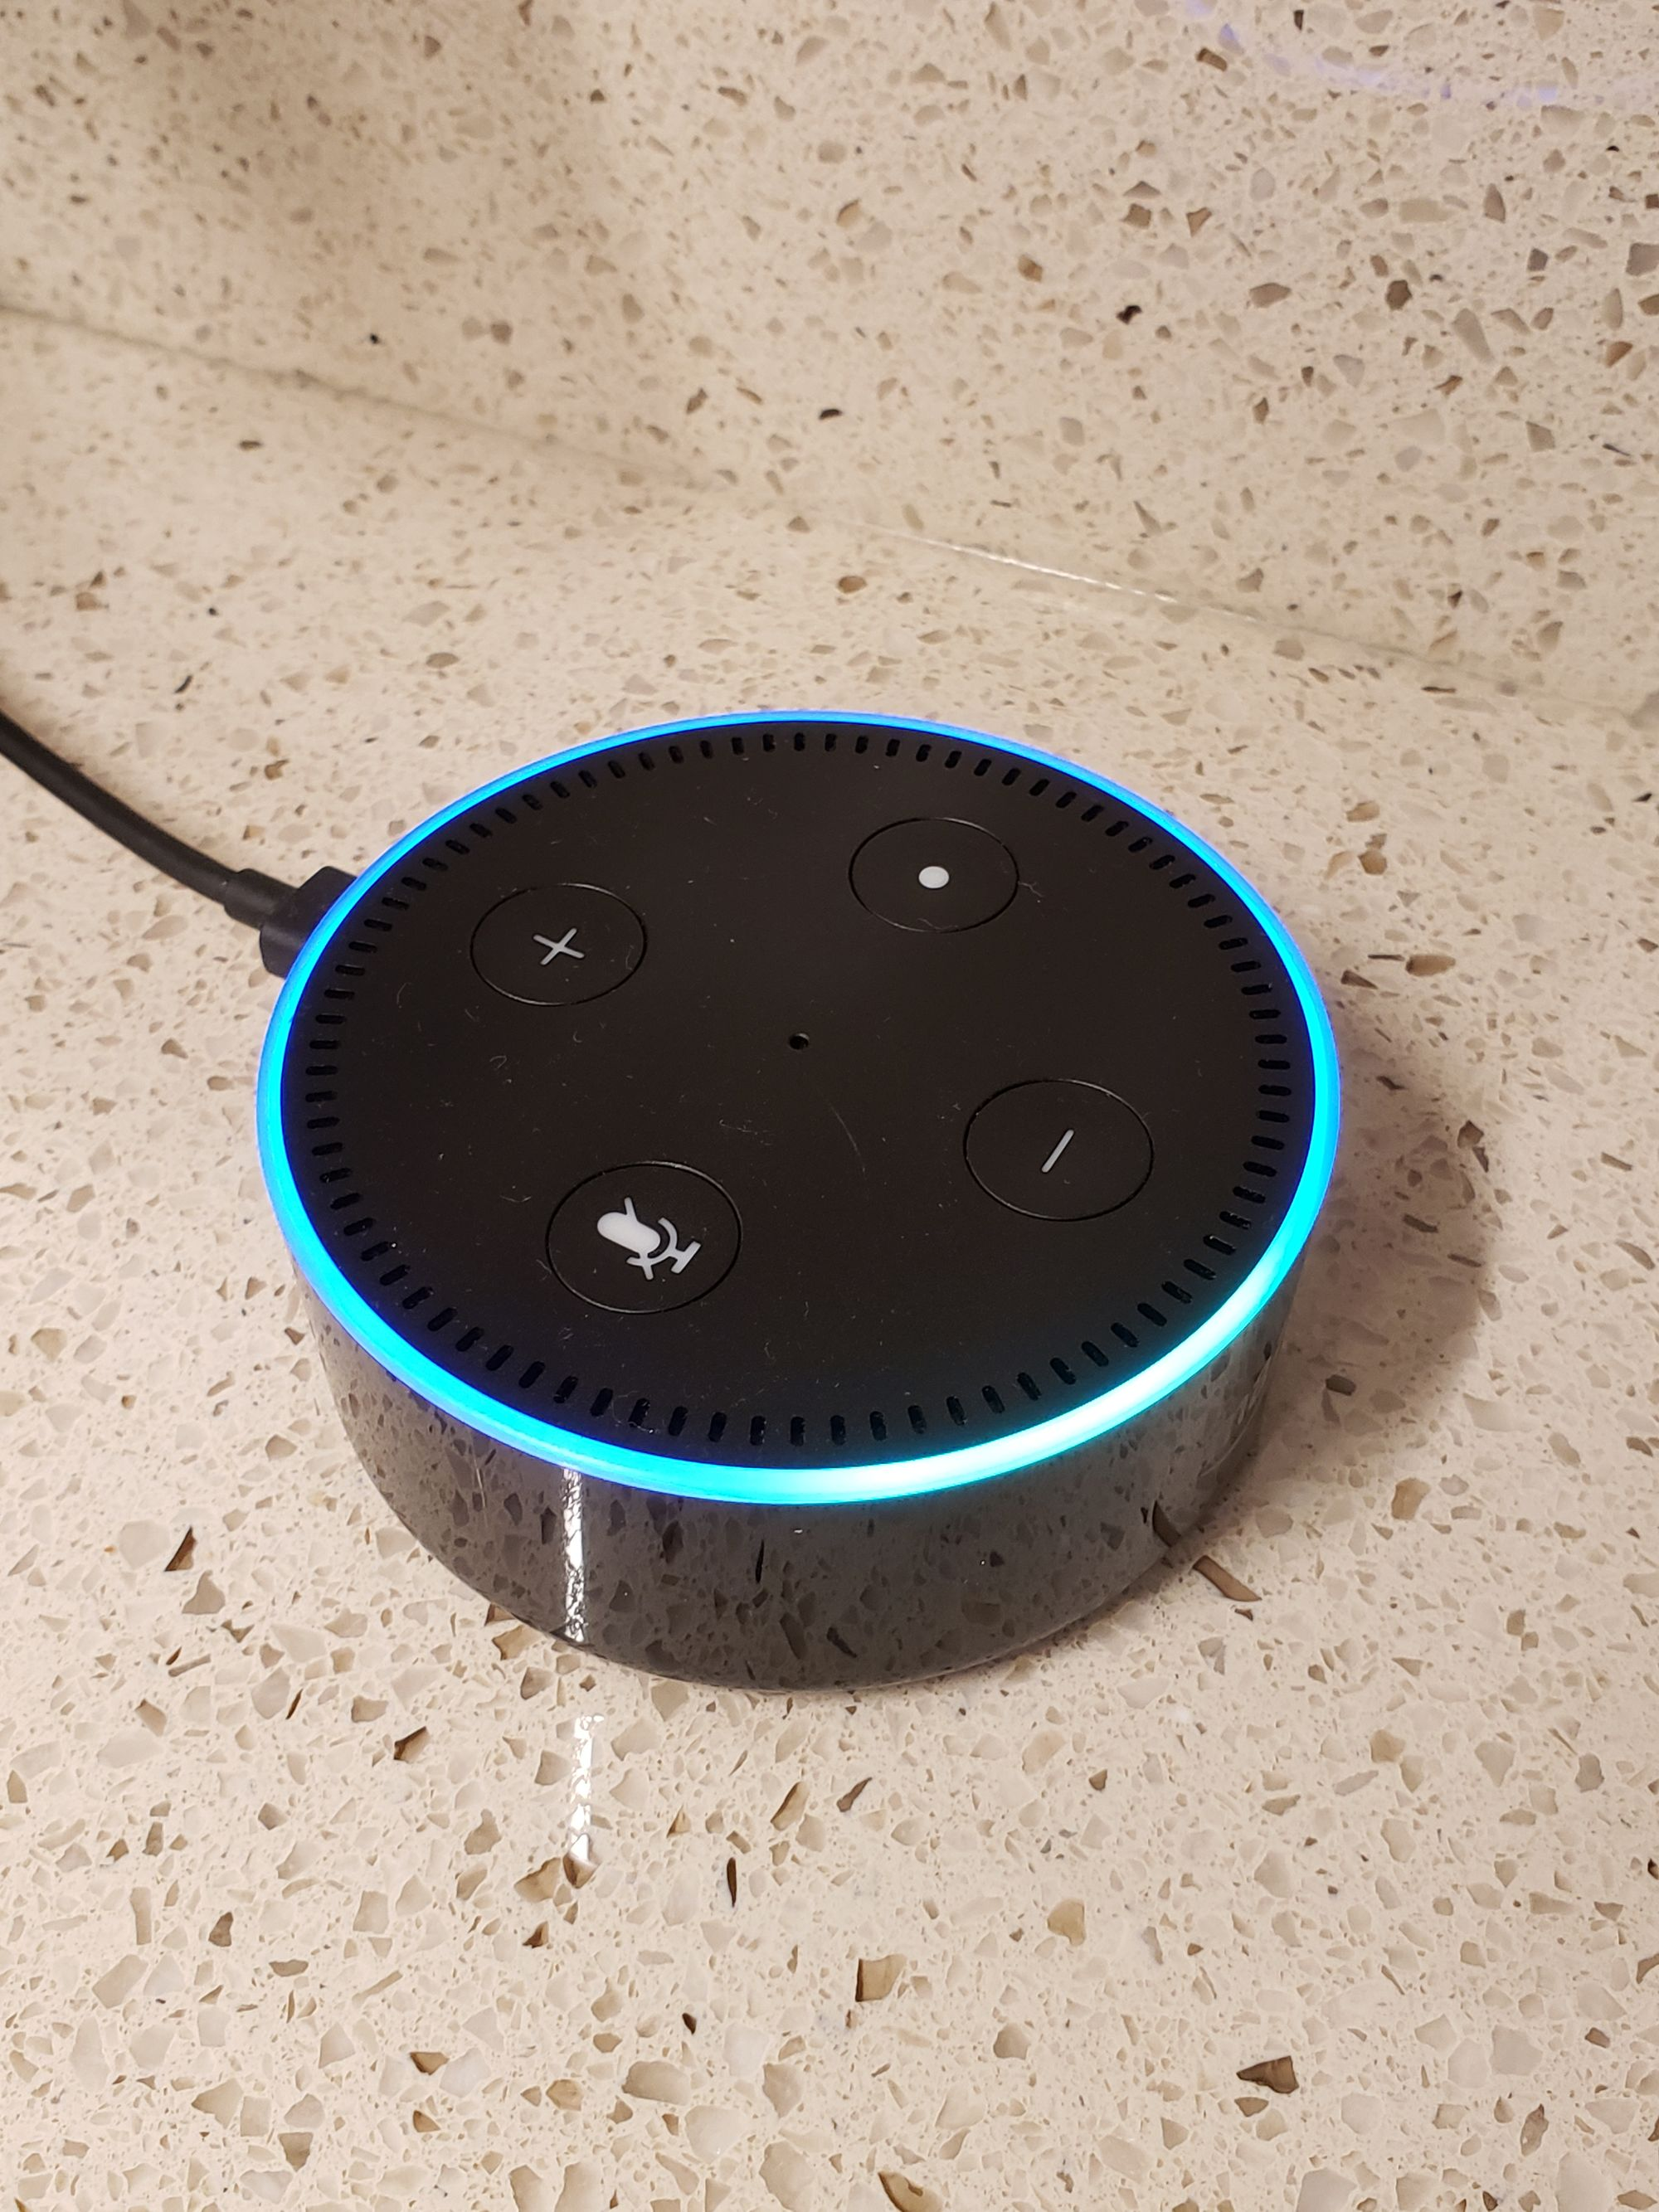 Alexa Voice Commands to Control Home Assistant